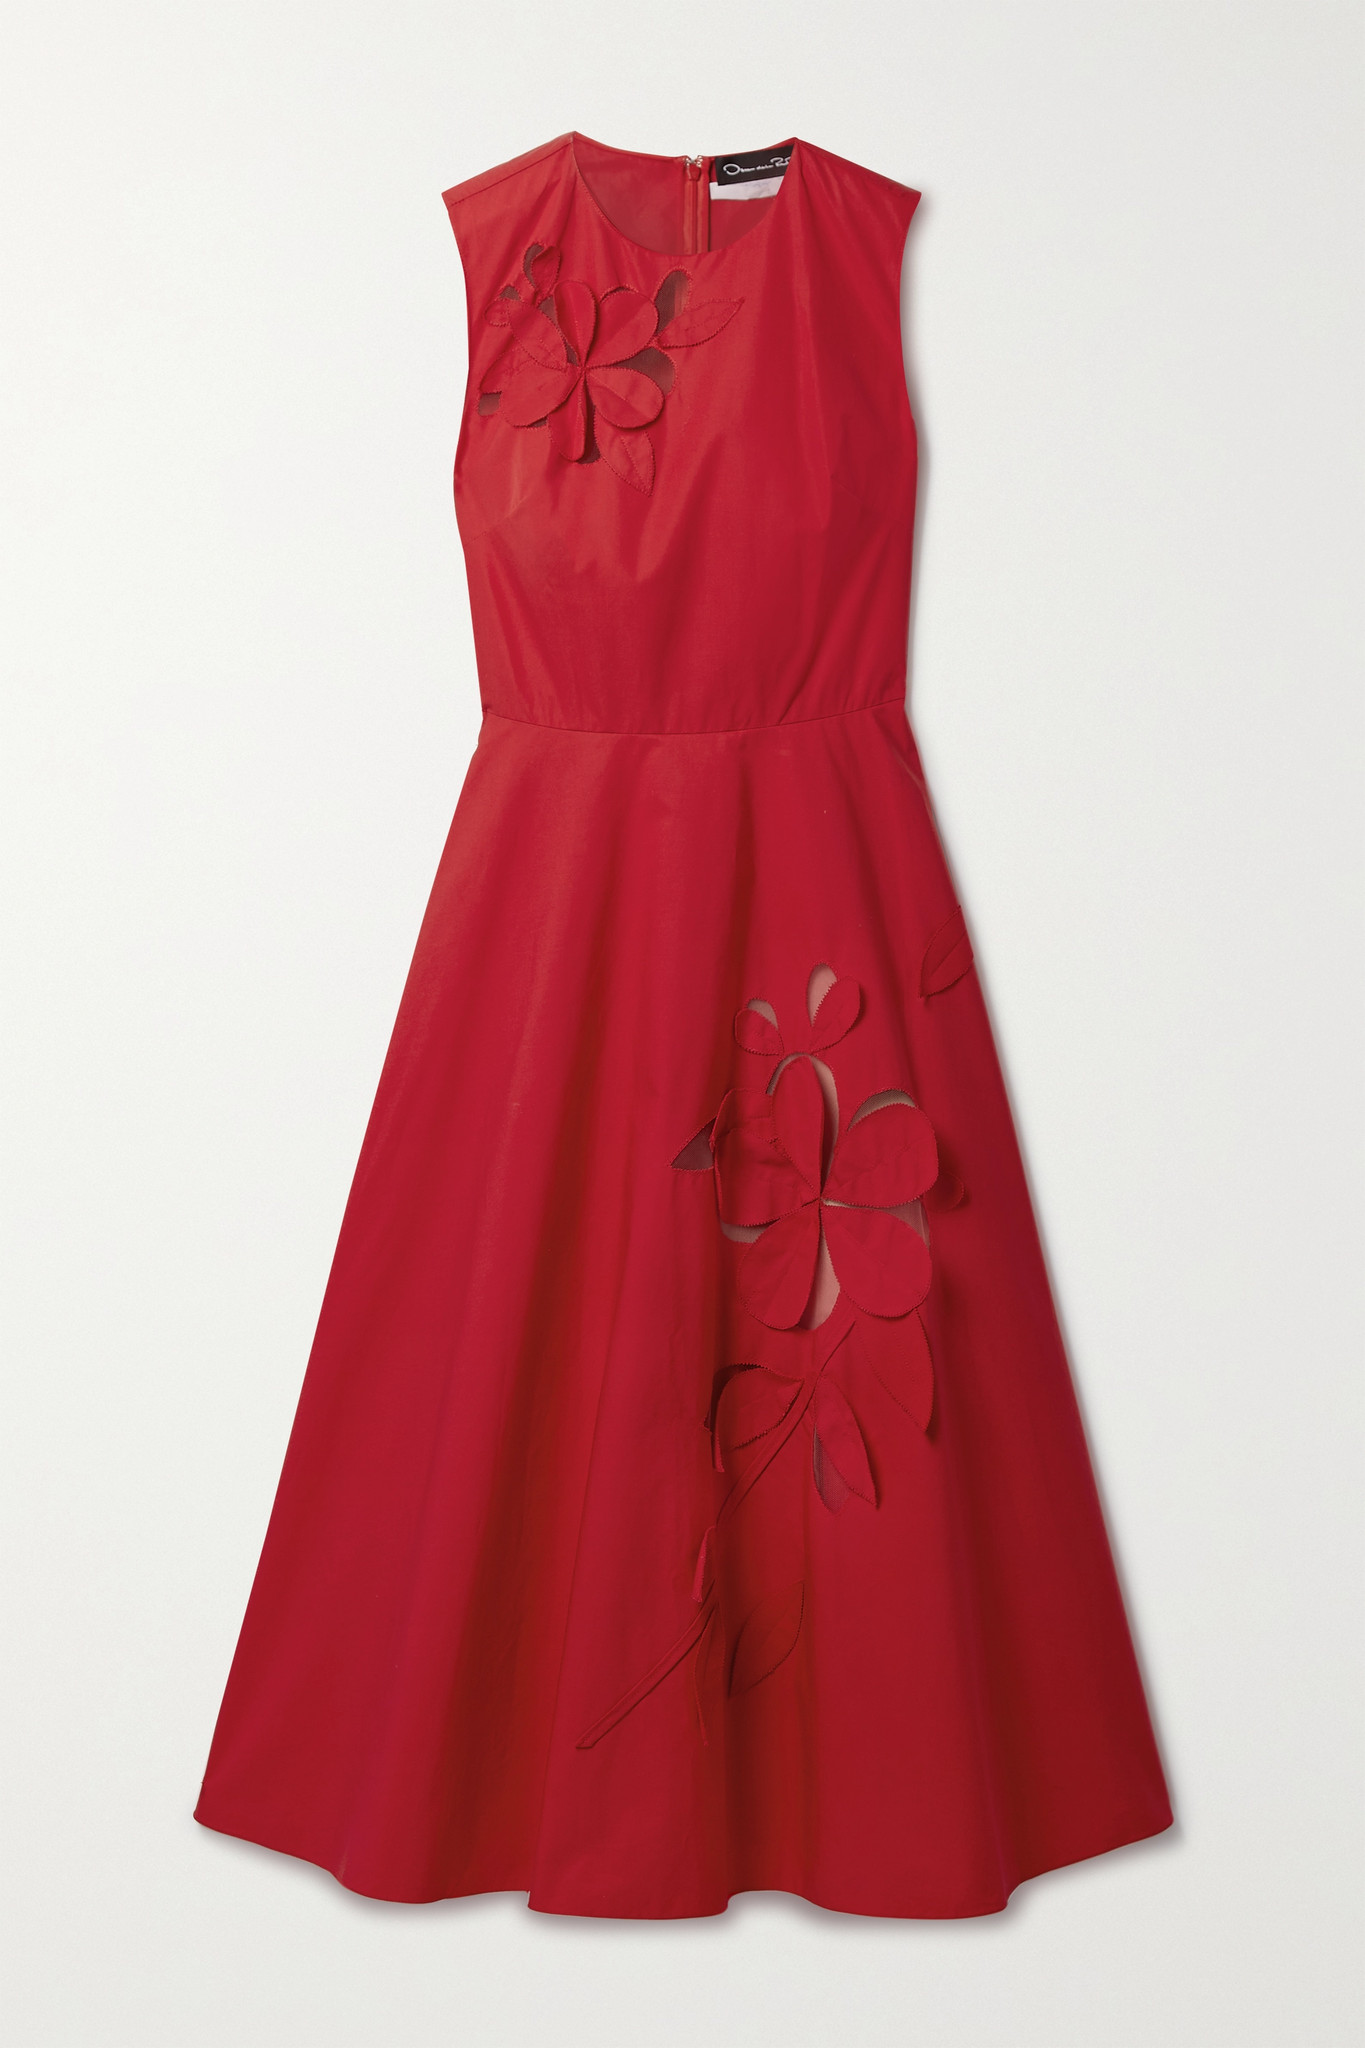 OSCAR DE LA RENTA - Appliquéd Tulle-paneled Cotton-blend Poplin Midi Dress - Red - US4